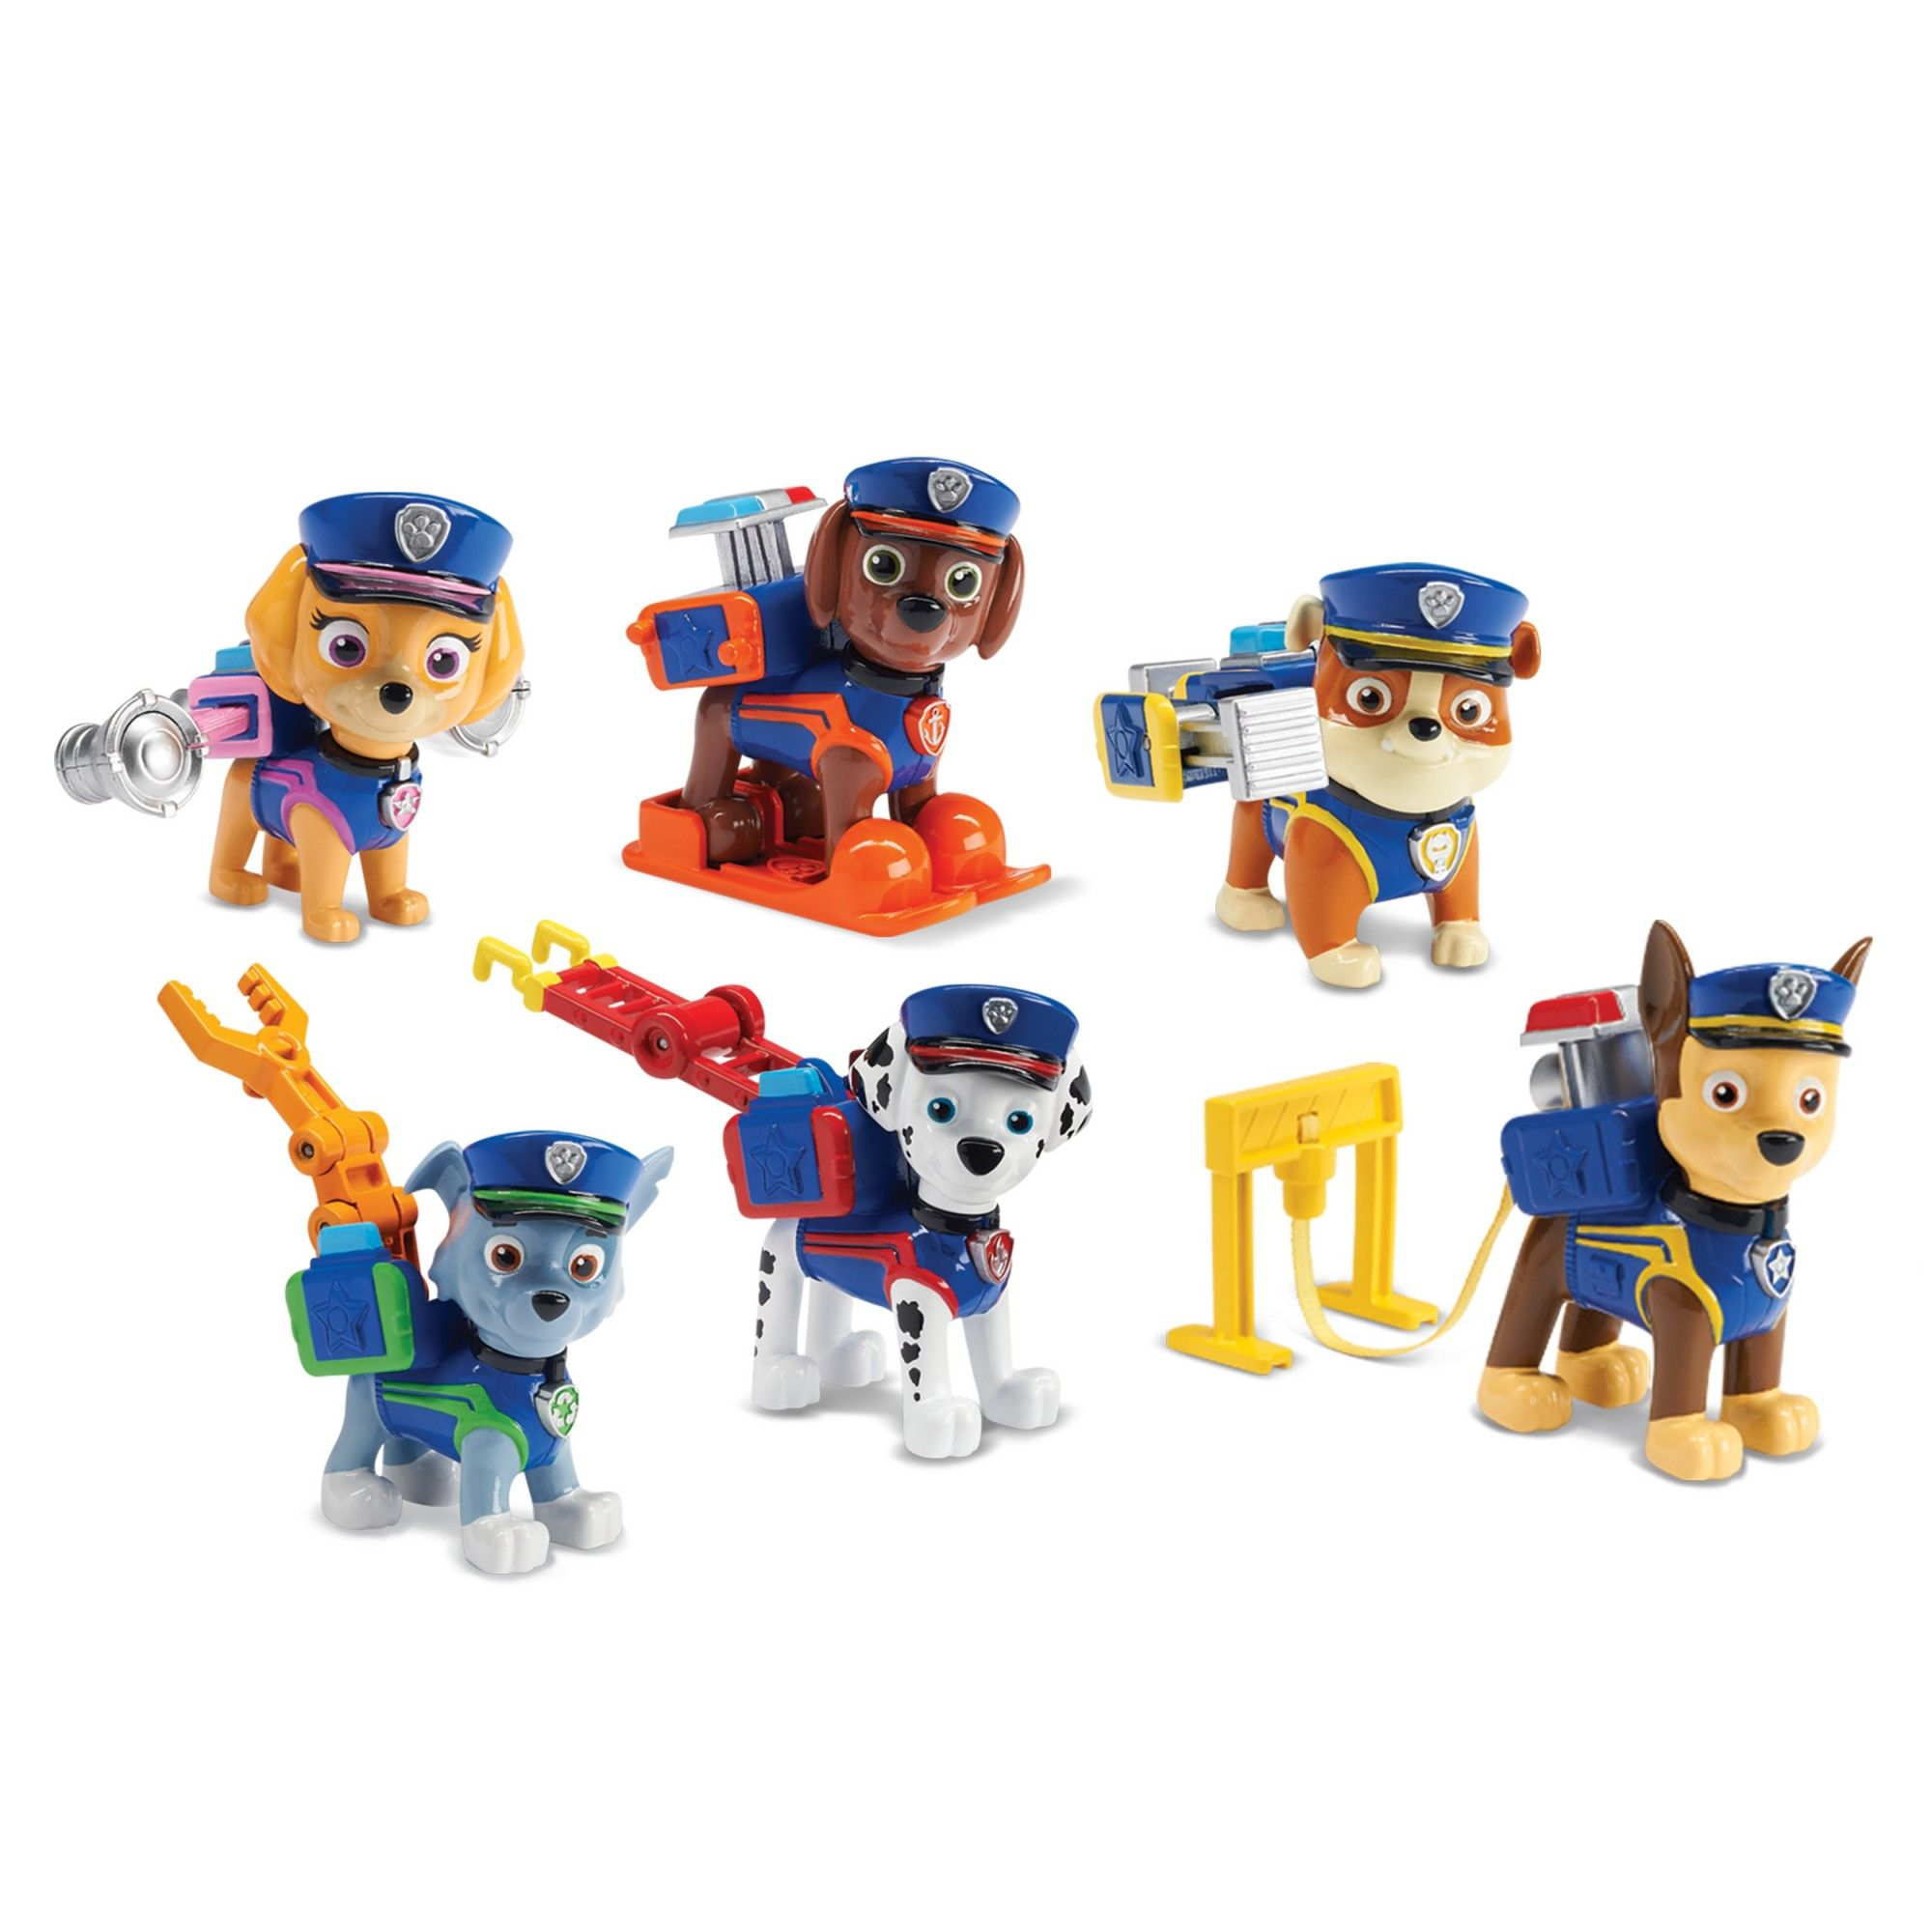 Paw Patrol Police Pups Action Pack Gift Set 6pc Paw Patrol Toys Paw Patrol Paw Patrol Figures